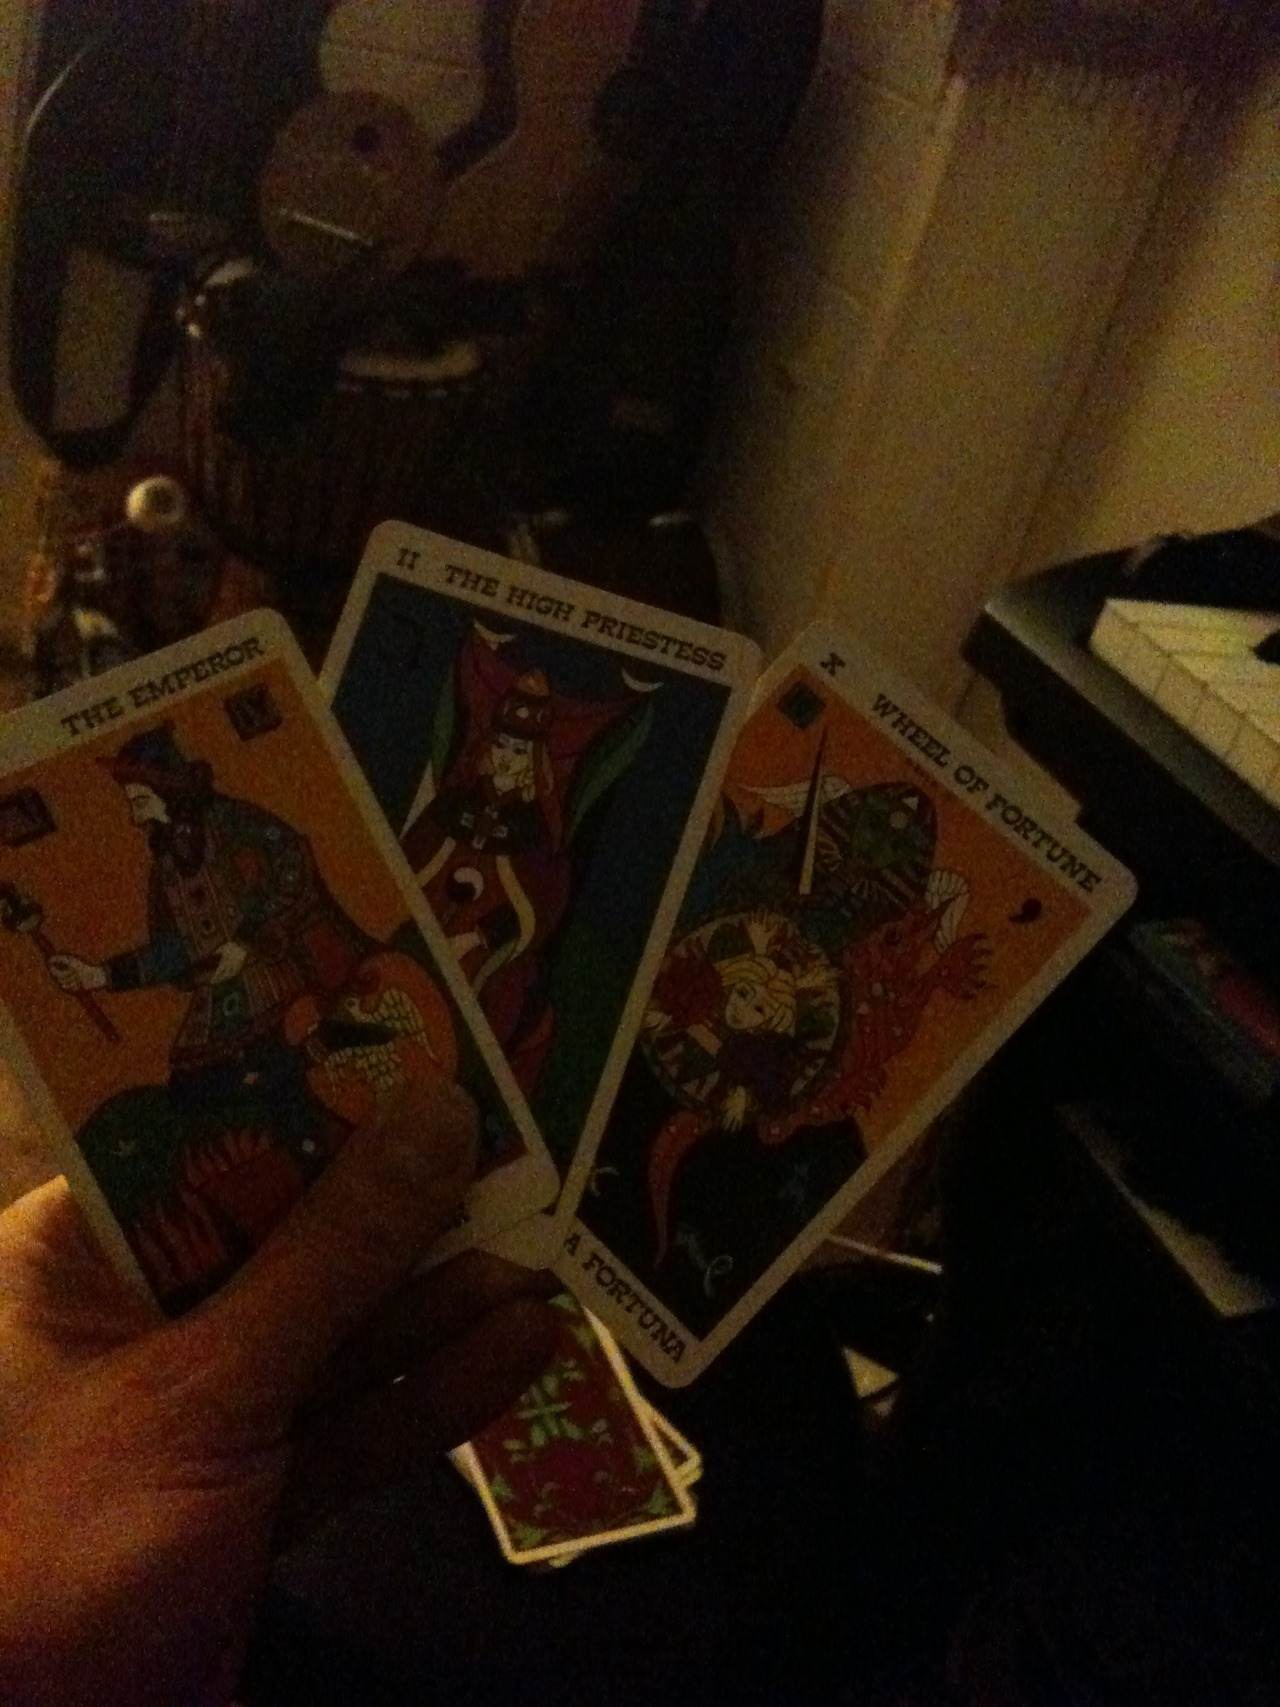 so the cards are always right.. and this is a great reading. i shall be patient. take it easy. and solid foundations behind new friendships hopefully will prove promising.